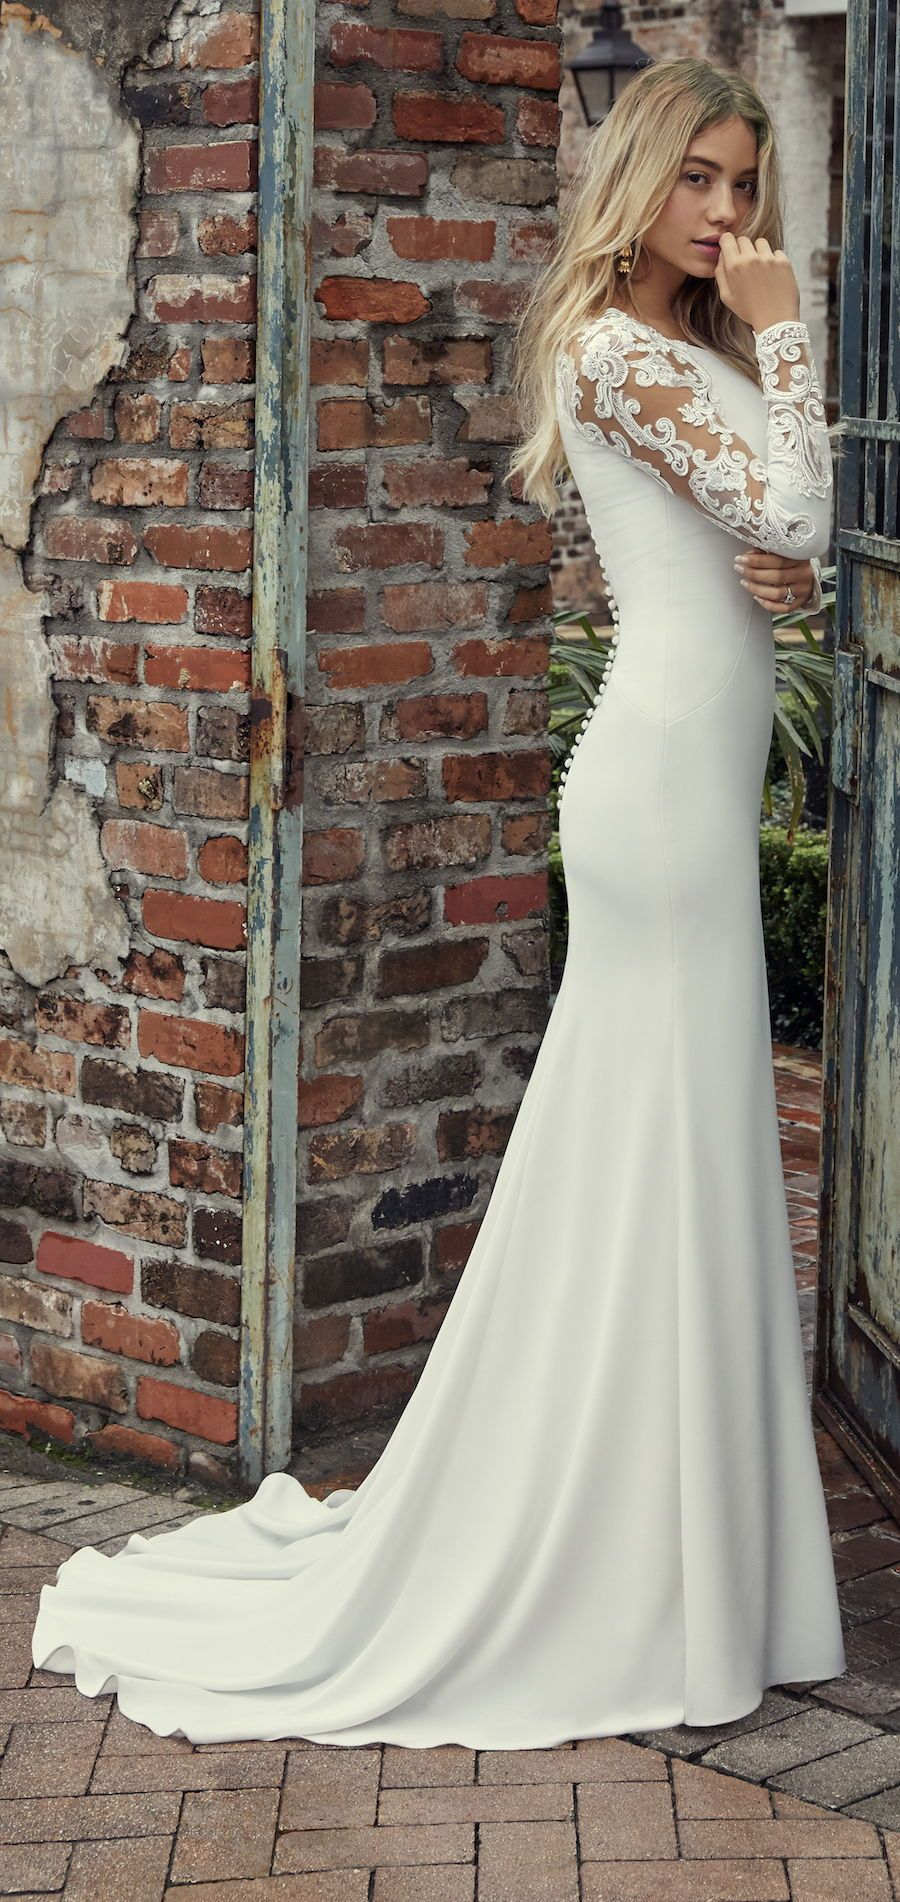 Bethany By Rebecca Ingram Wedding Dresses And Accessories Classy Wedding Dress Long Sleeve Mermaid Wedding Dress Sleek Wedding Dress [ 1902 x 900 Pixel ]